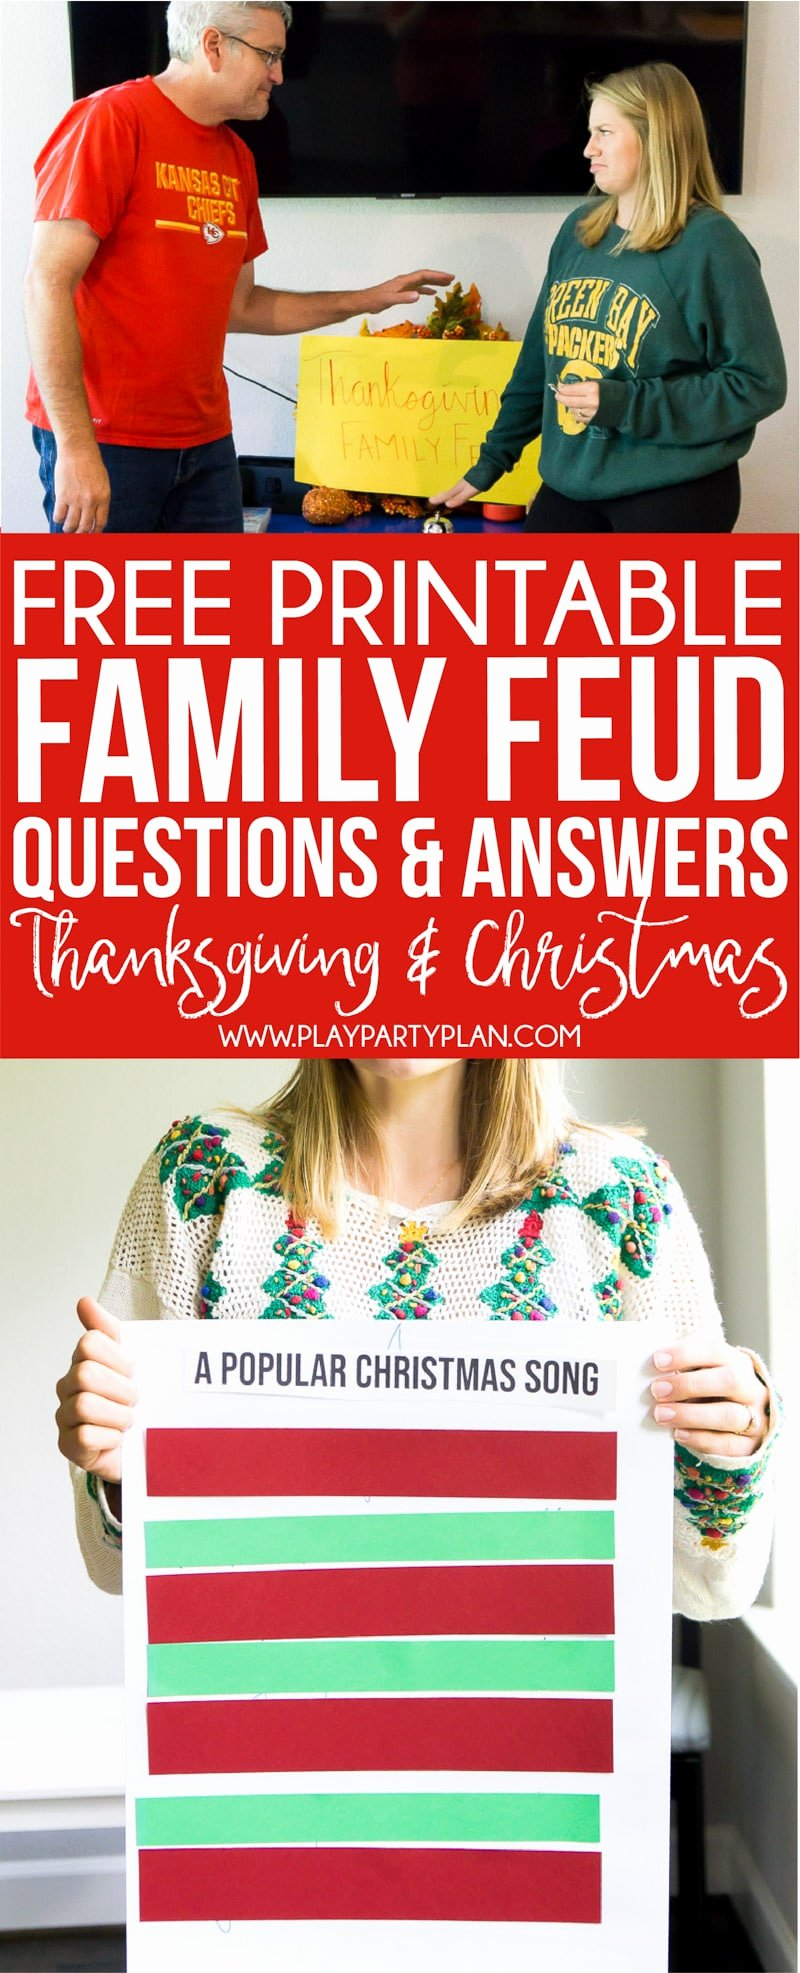 Bible Family Feud Questions Elegant Free Holiday Family Feud Game Thanksgiving & Christmas